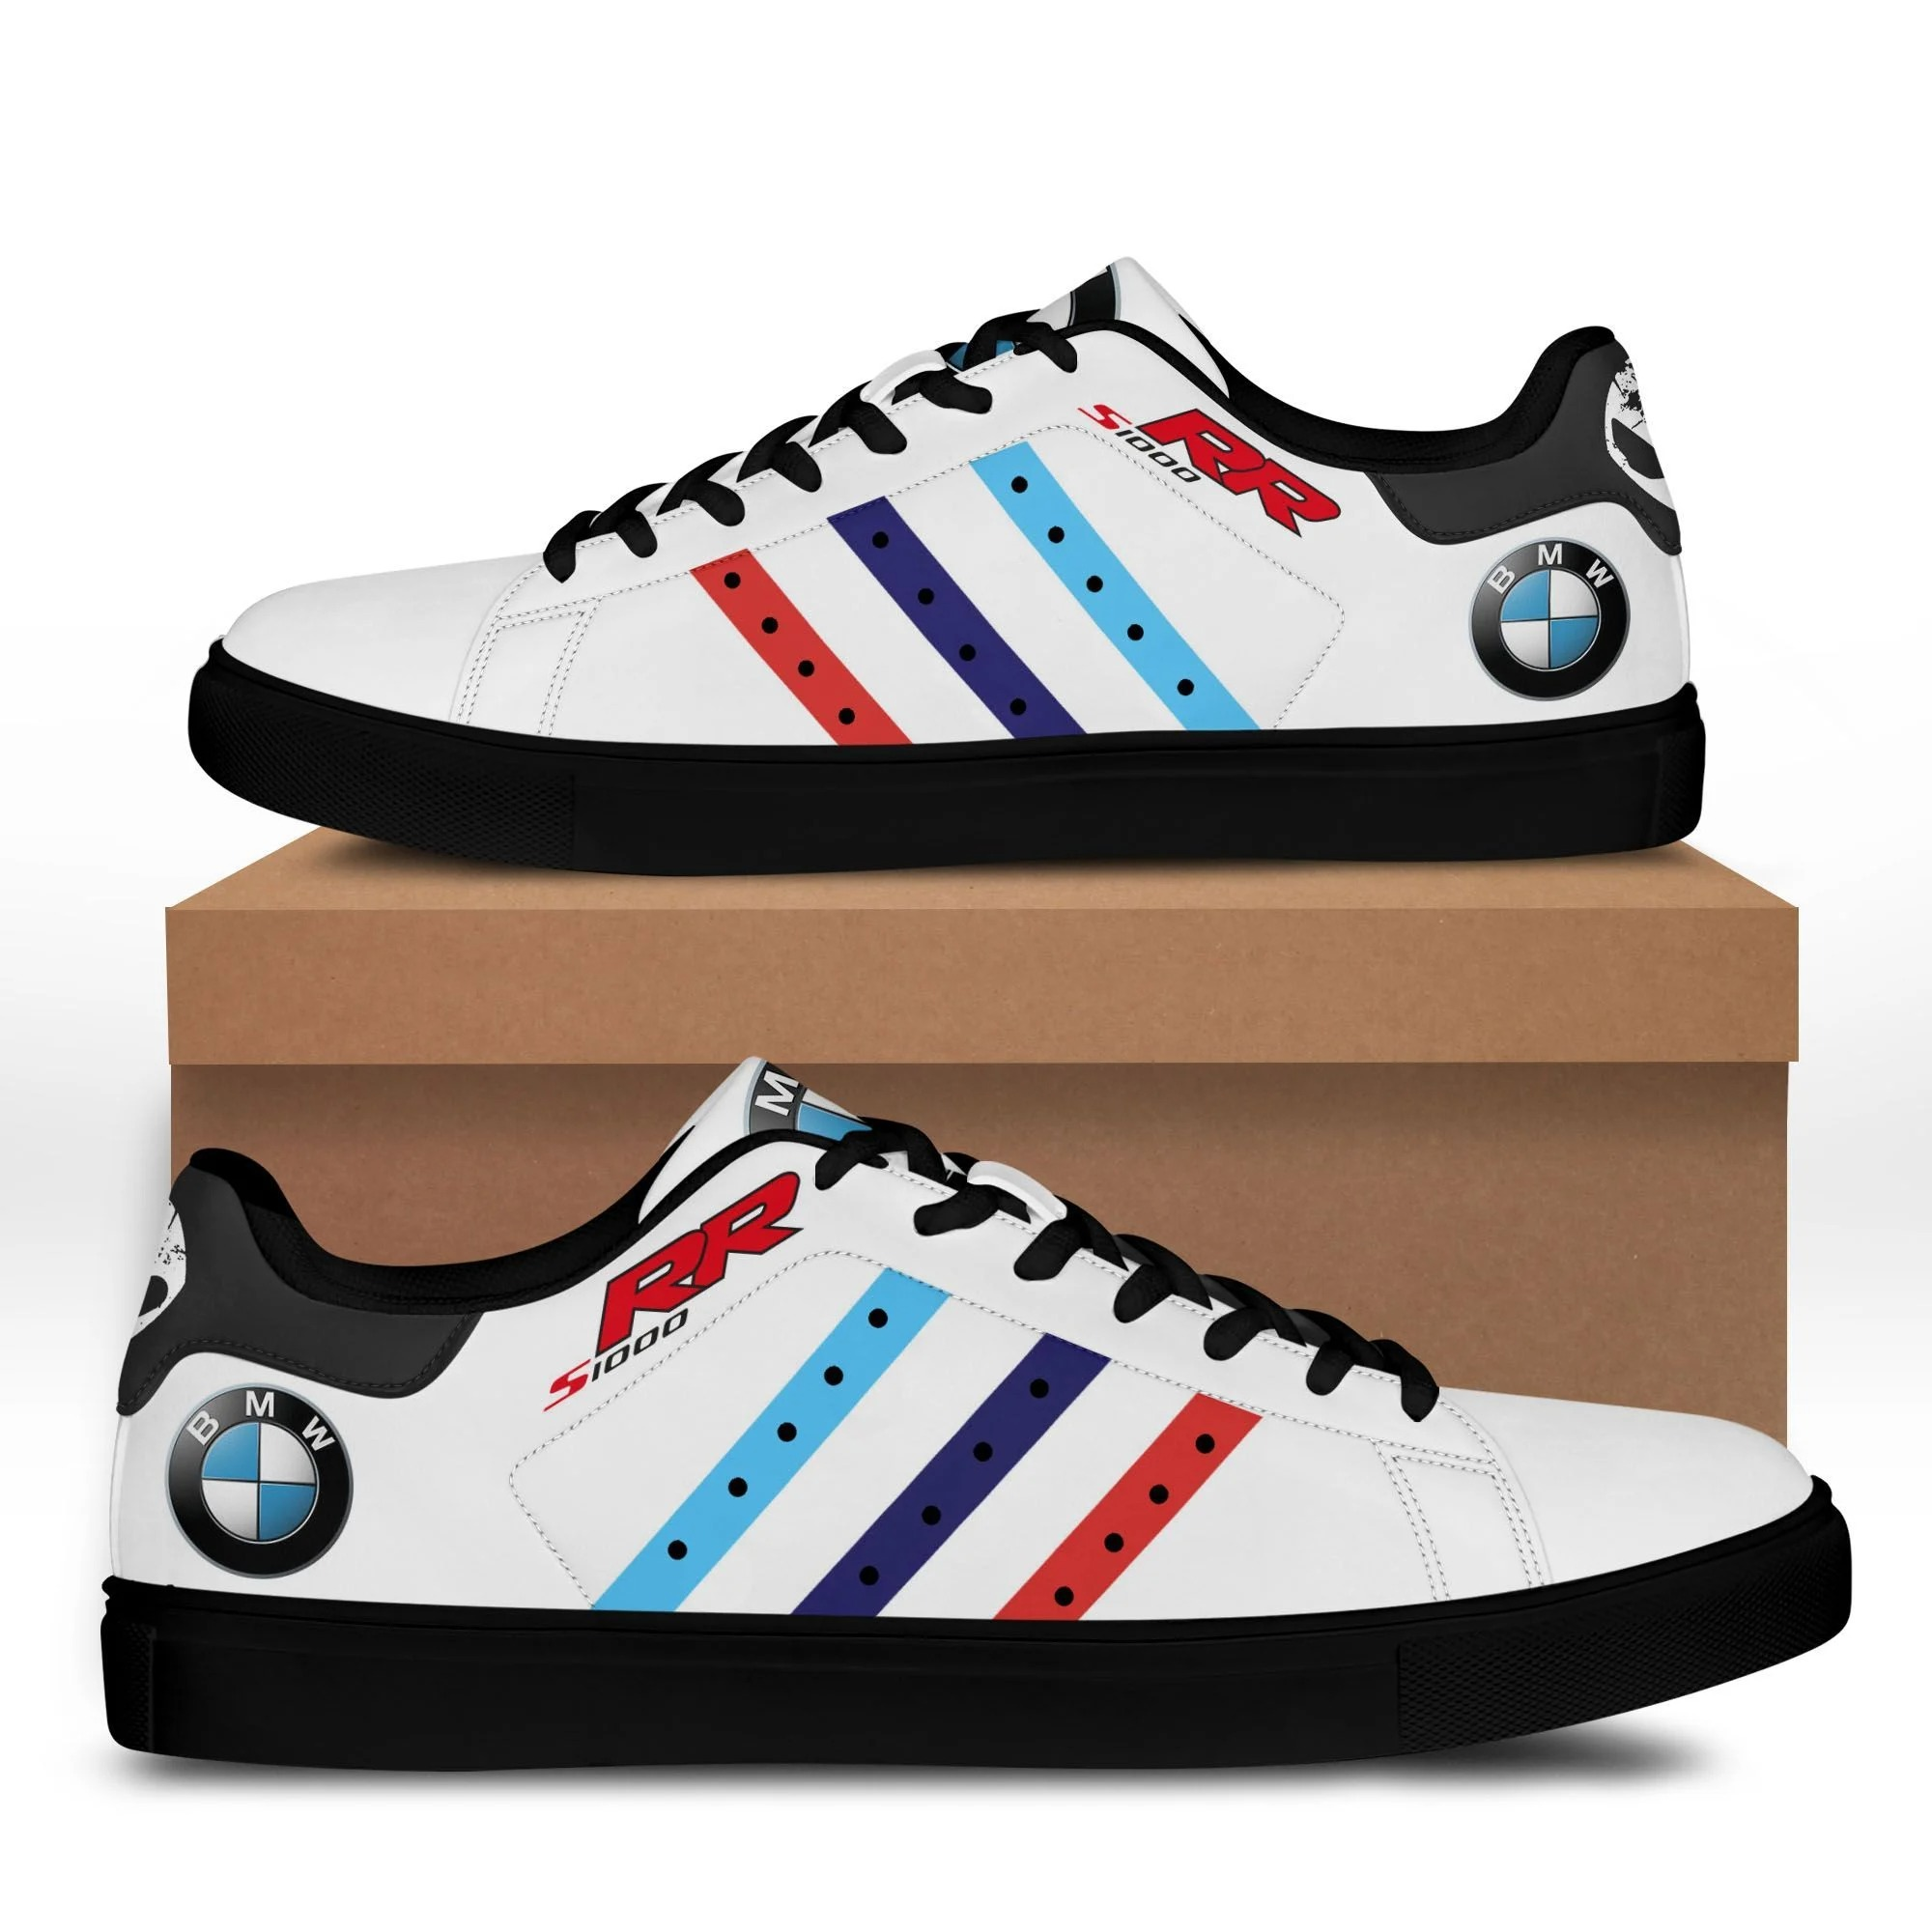 BMW S1000RR stan smith low top shoes 2